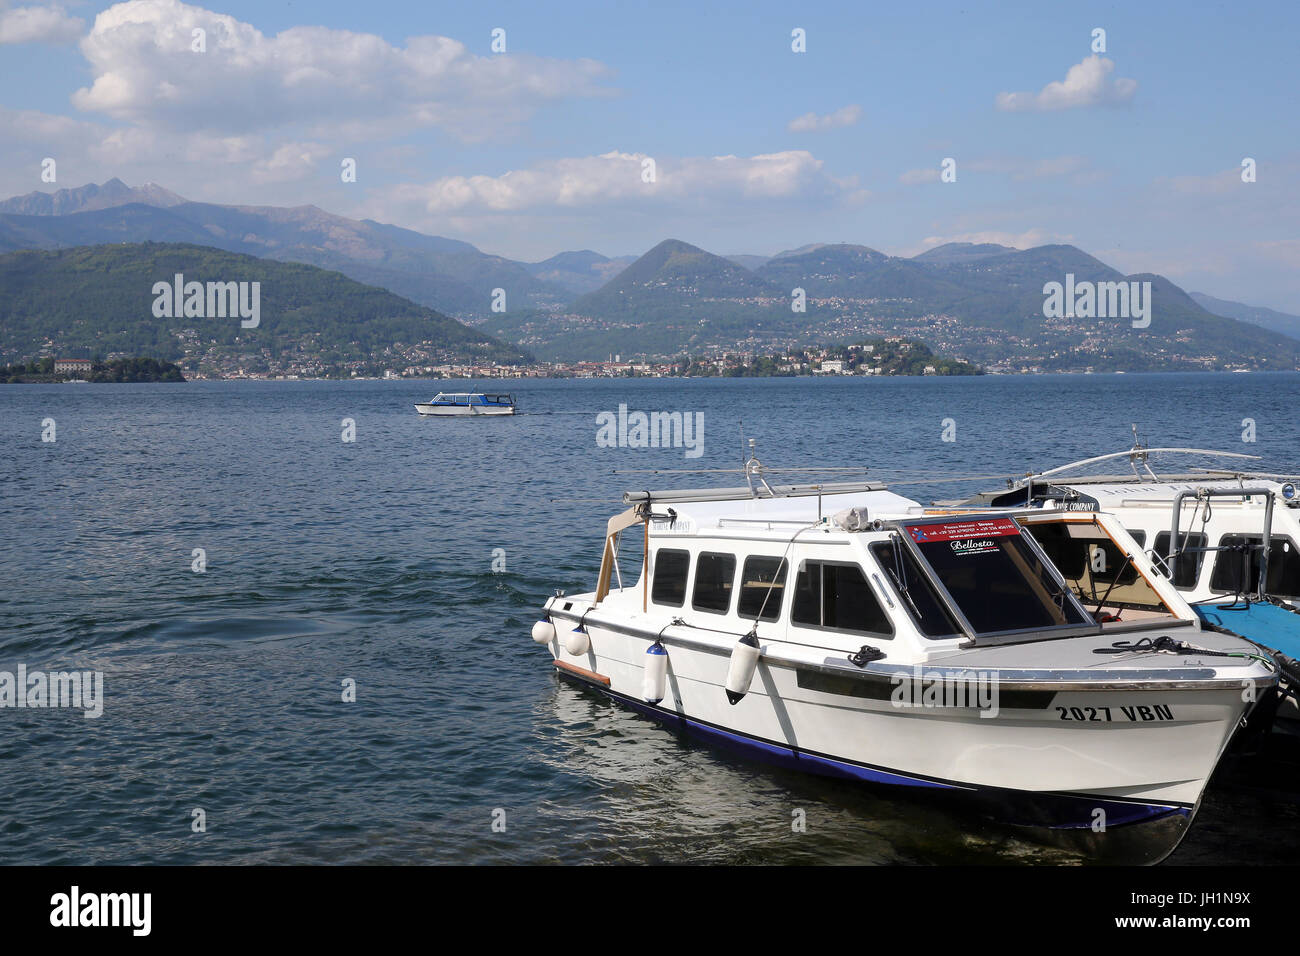 Boats docking on waterfront of Stresa. Italy. - Stock Image